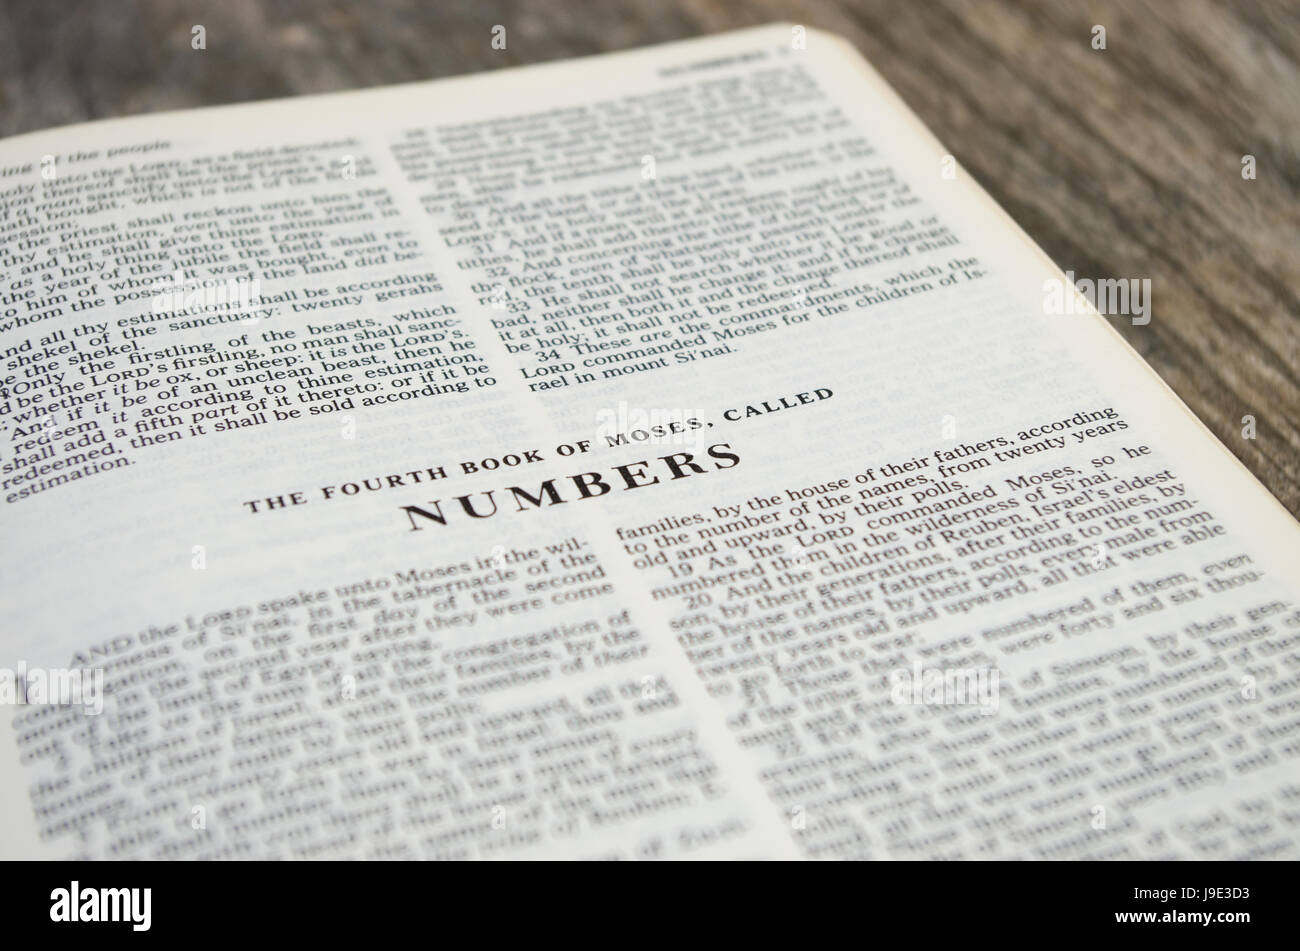 Title page for the book of Numbers in the Bible – King James Version - Stock Image